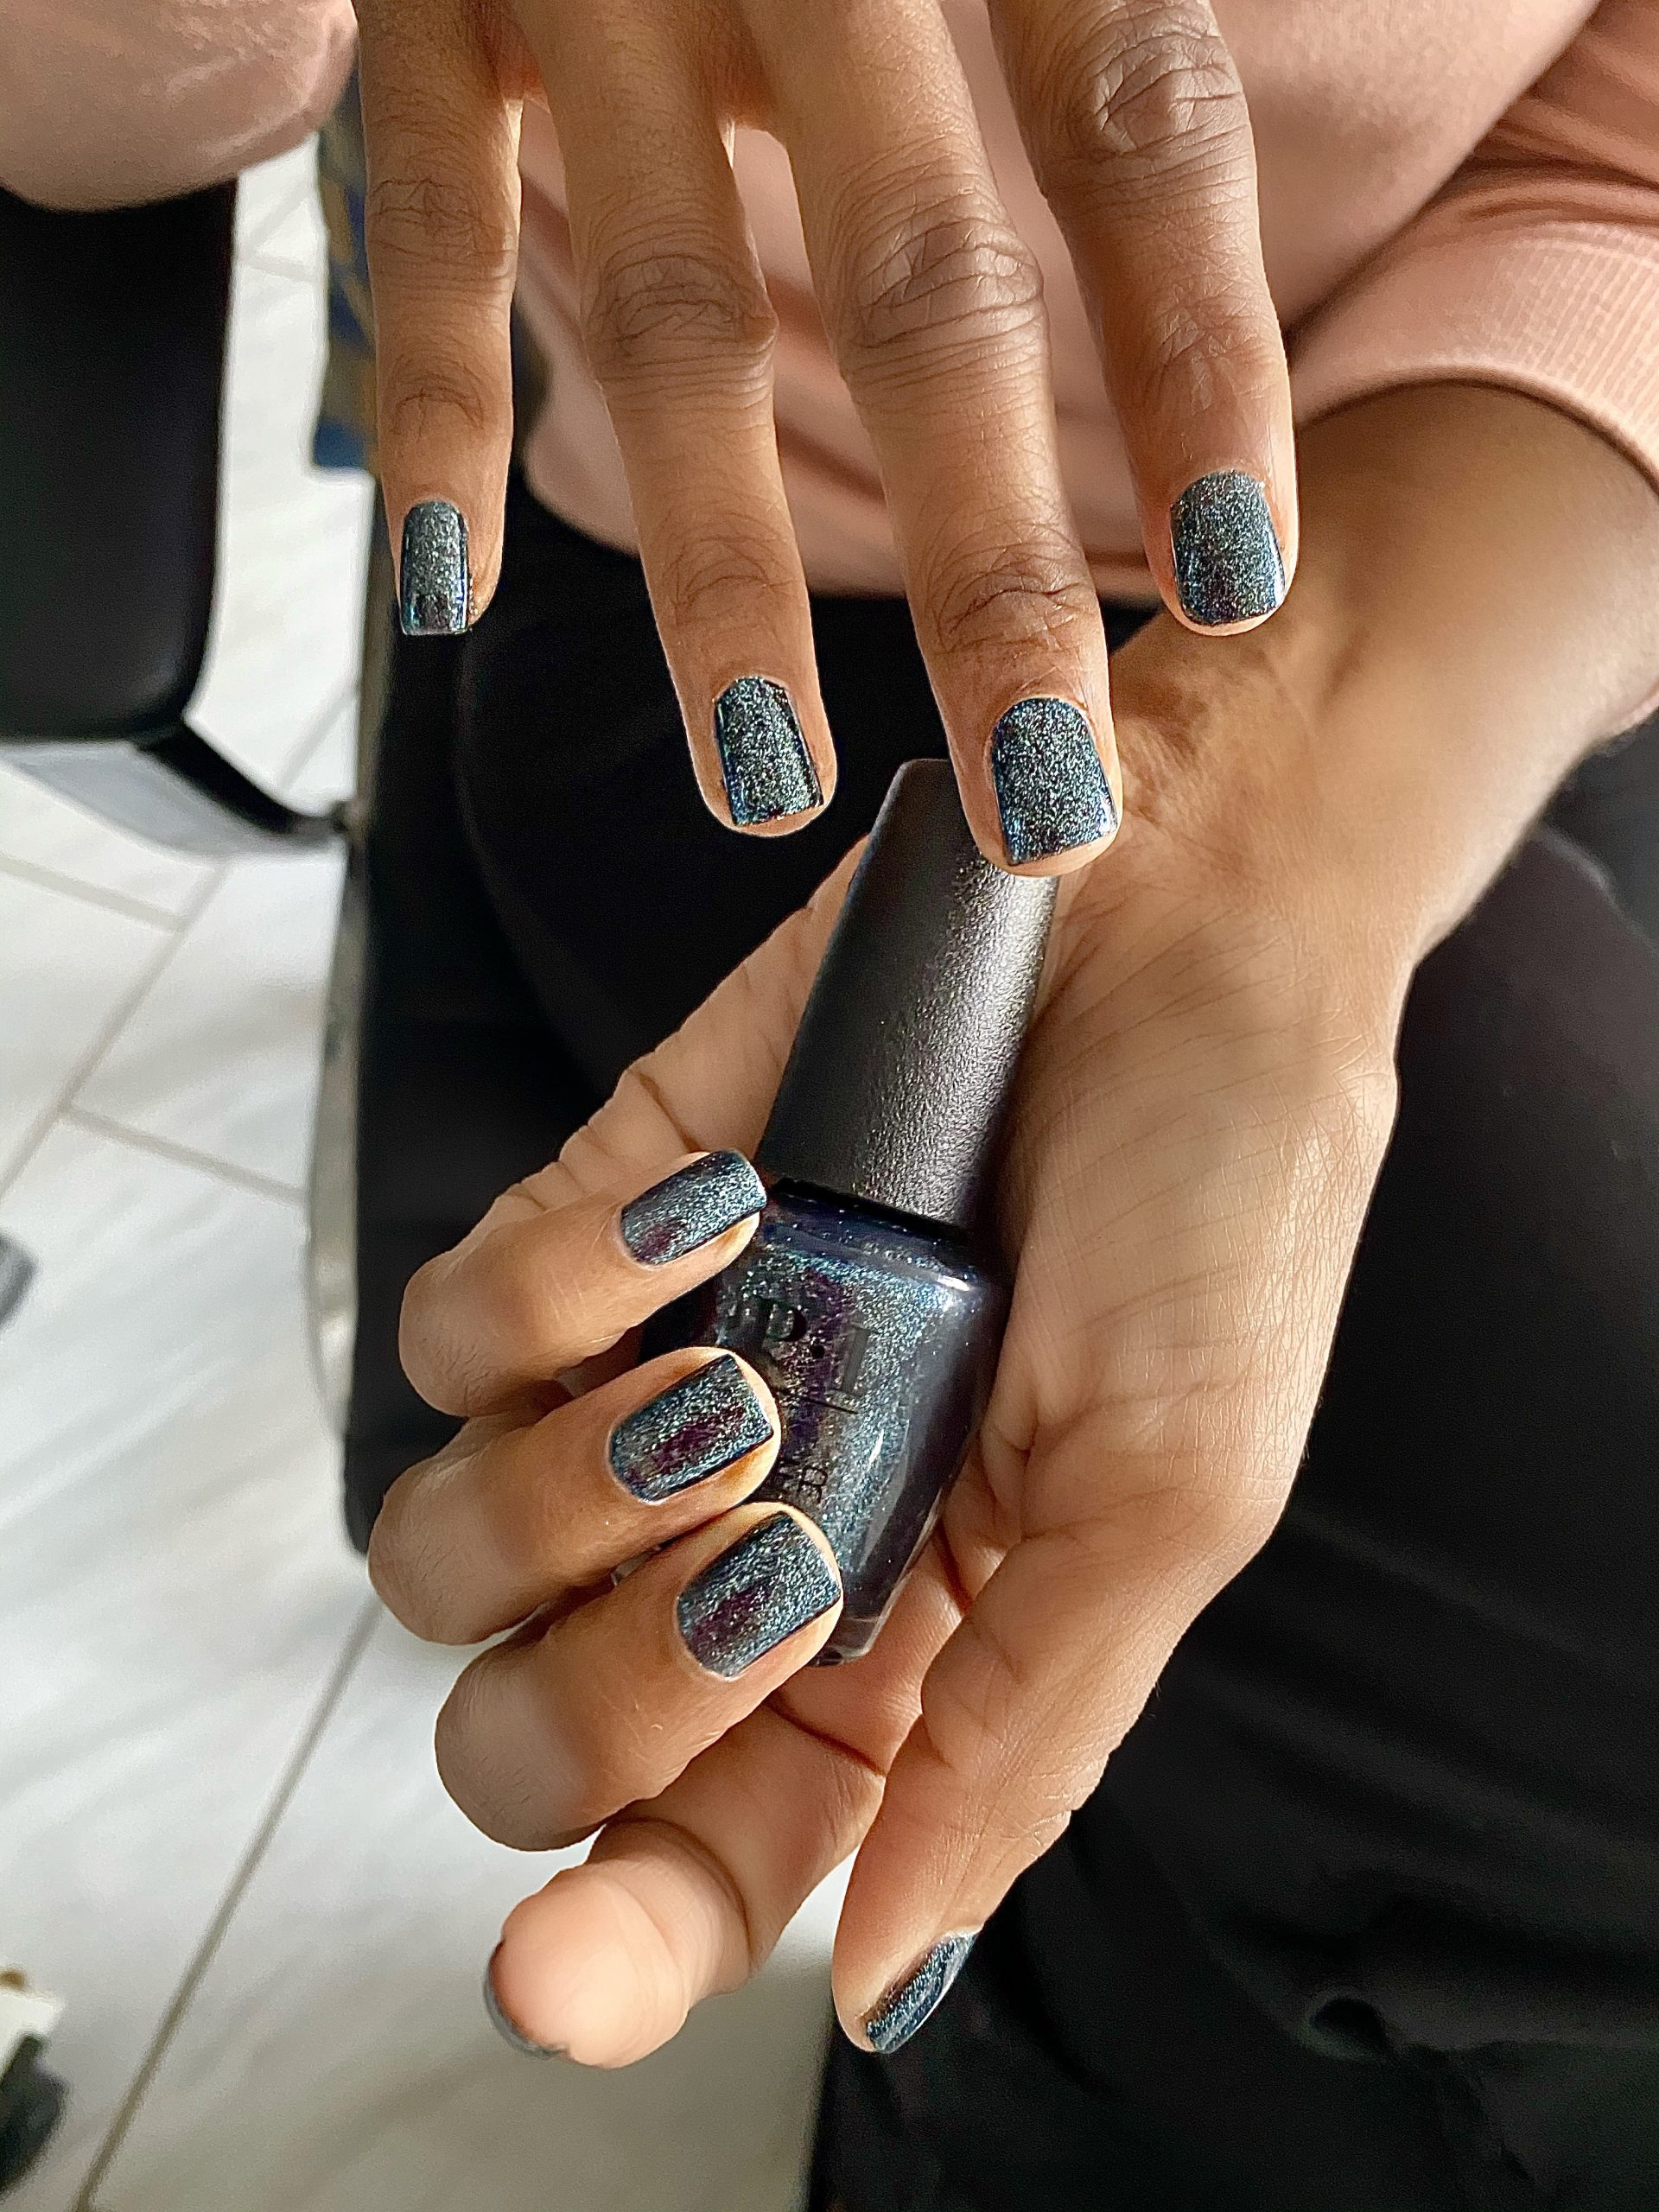 Get The Look: OPI Shine Bright Holiday 2020 Collection